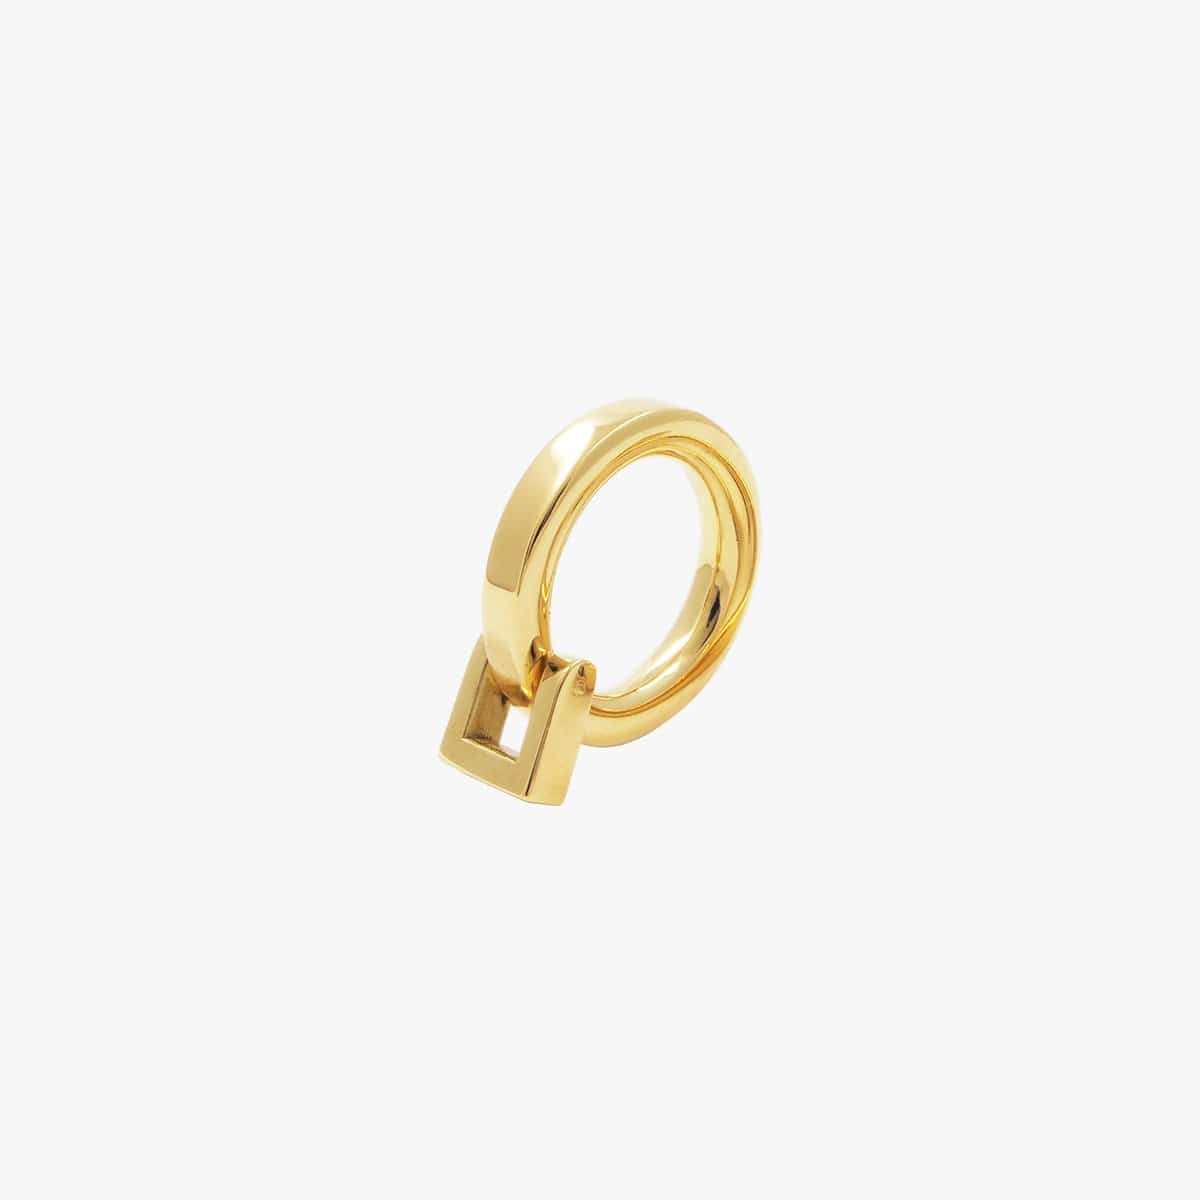 Gold Plated Ring - R0054 ORO-CXC-Renee Taylor Gallery